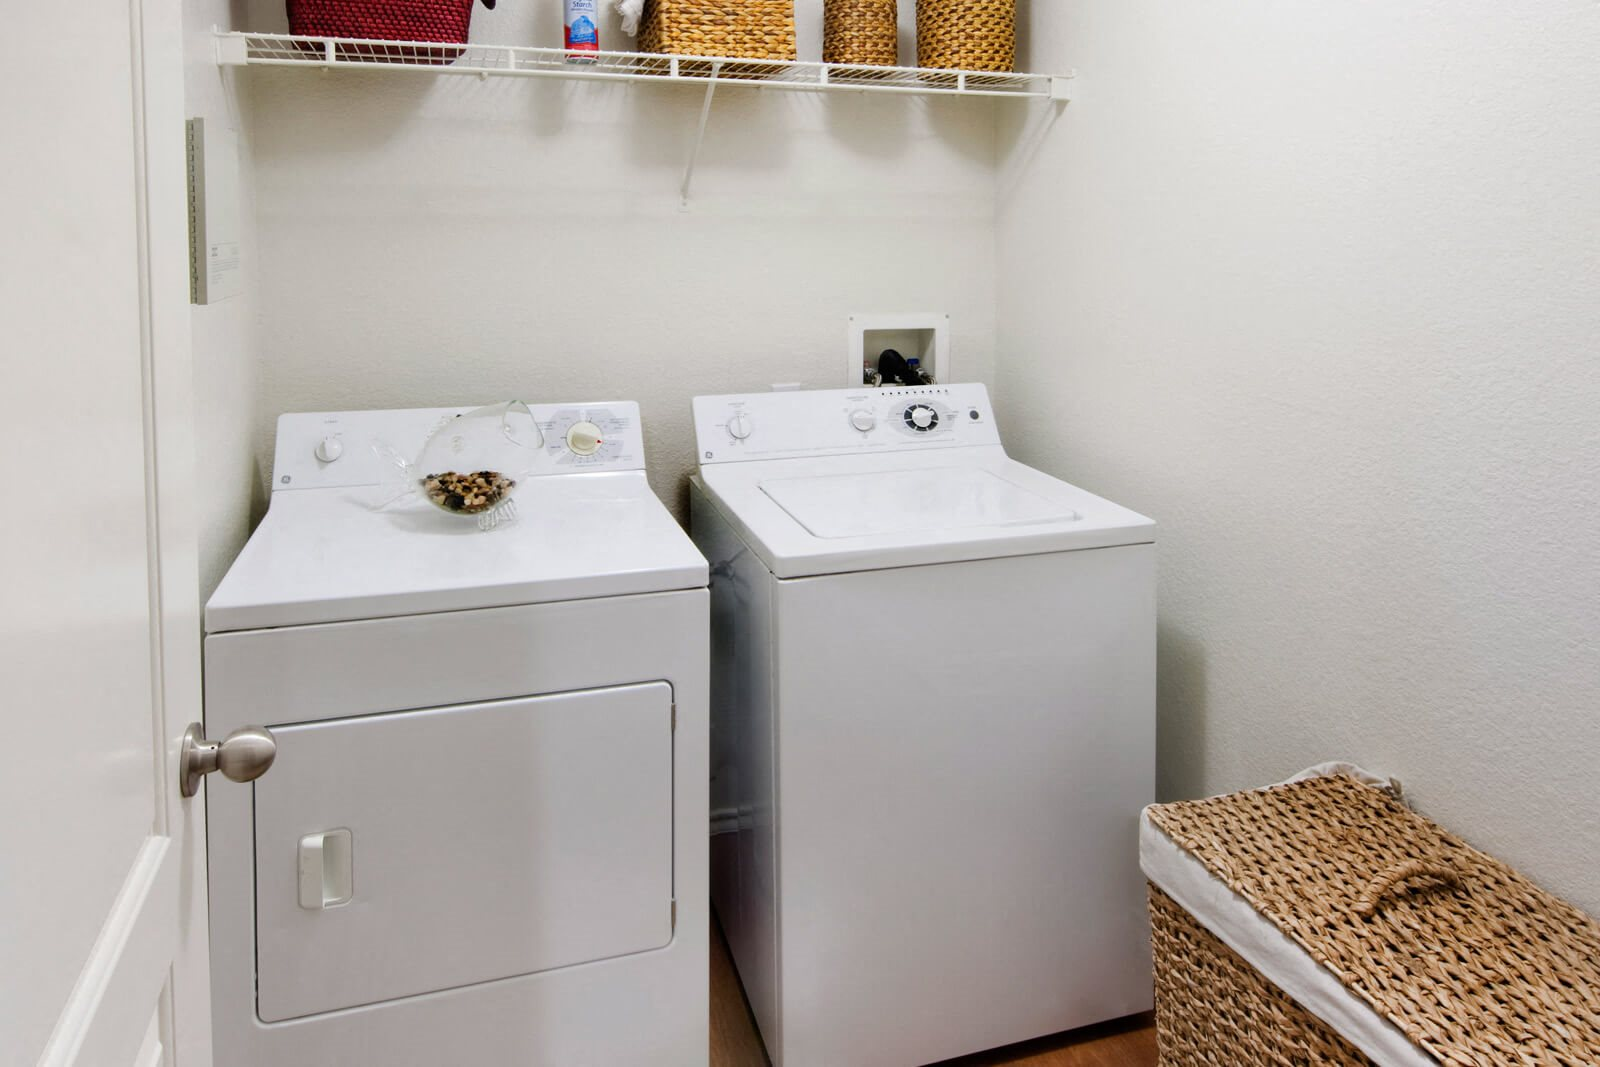 Full-Size Washers and Dryers at Windsor at Main Place, Orange, CA